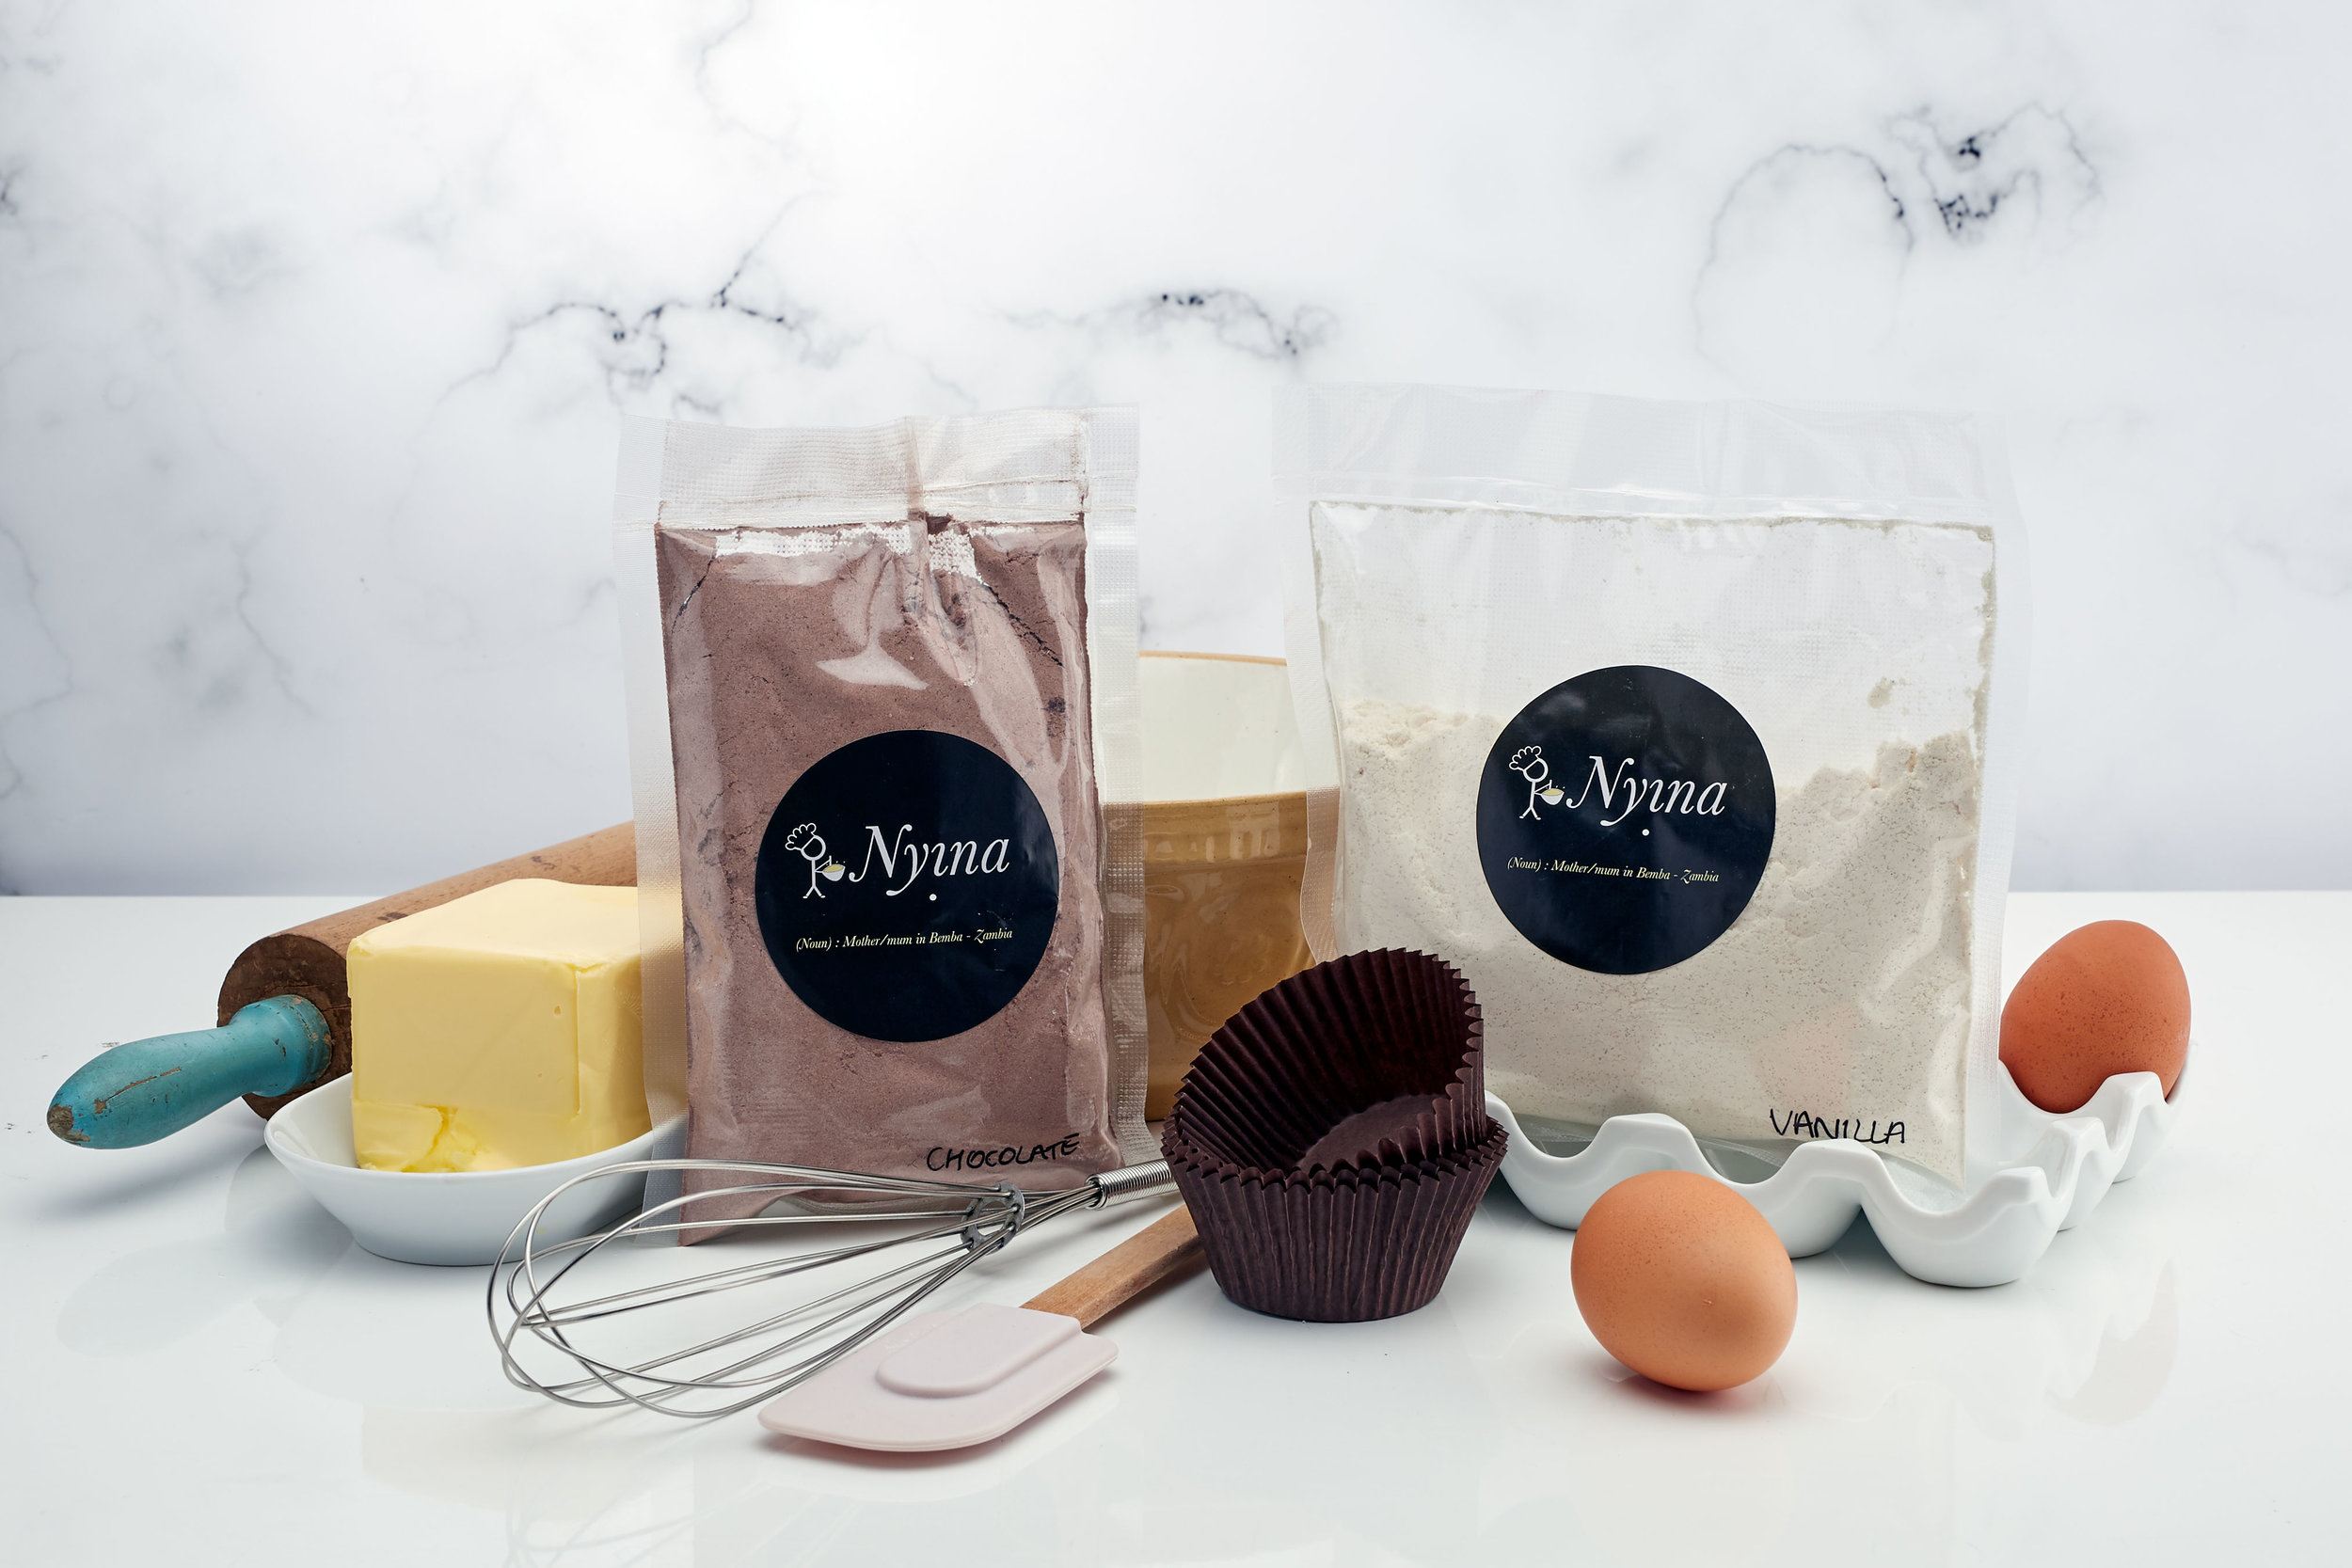 Nyina chocolate and vanilla cake mixes